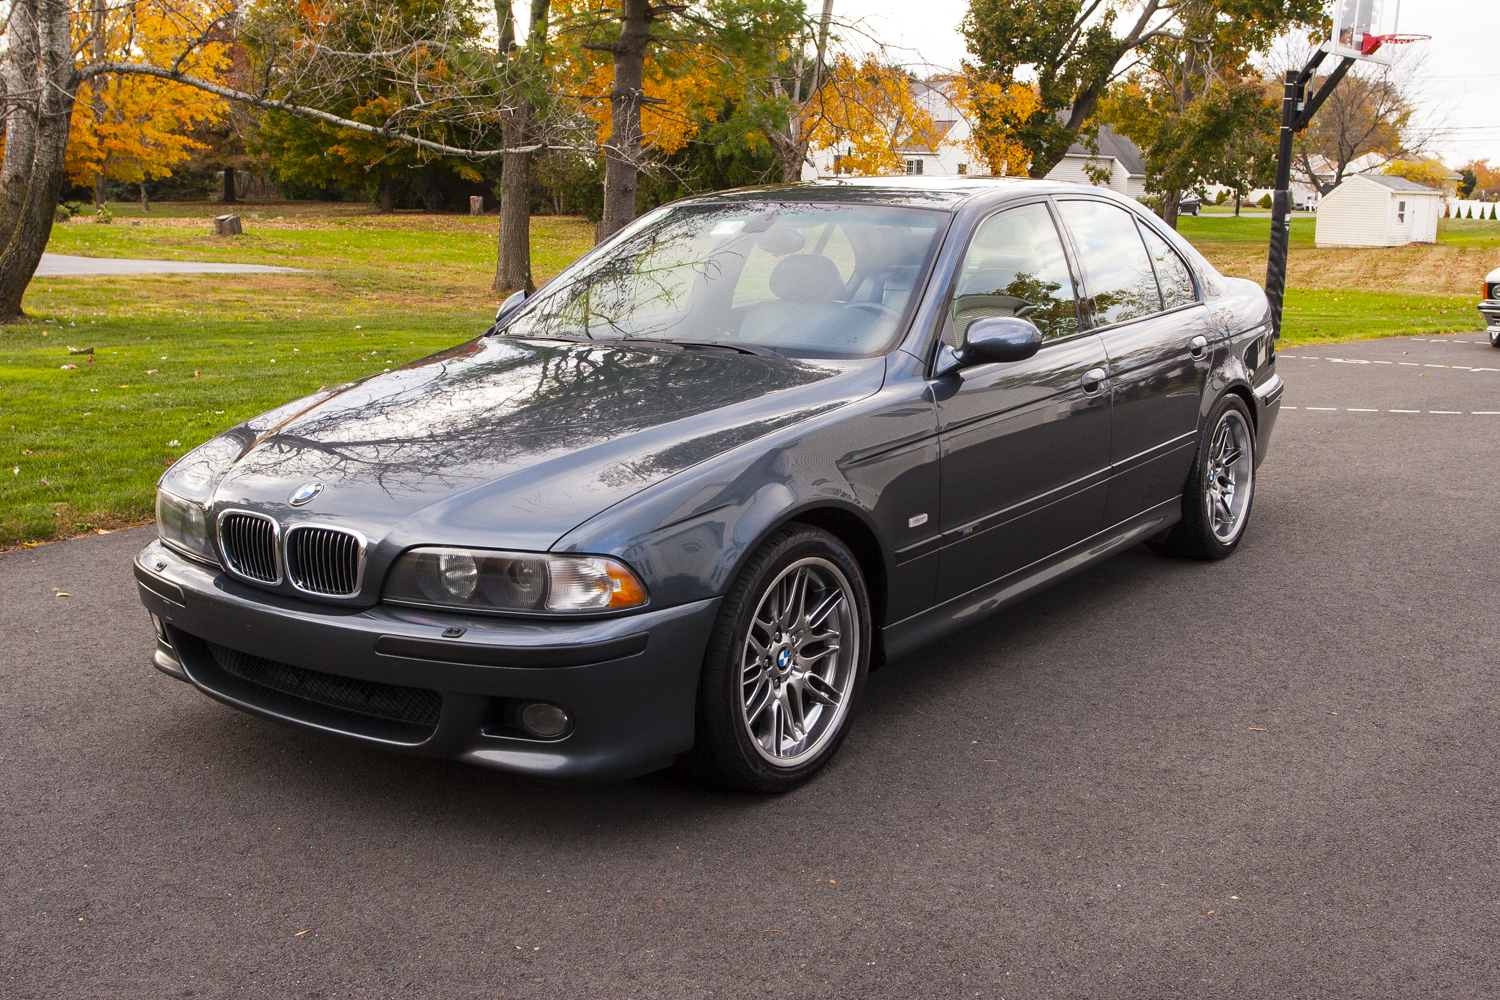 2000 E39 M5 for sale in CT-img_8330.jpg